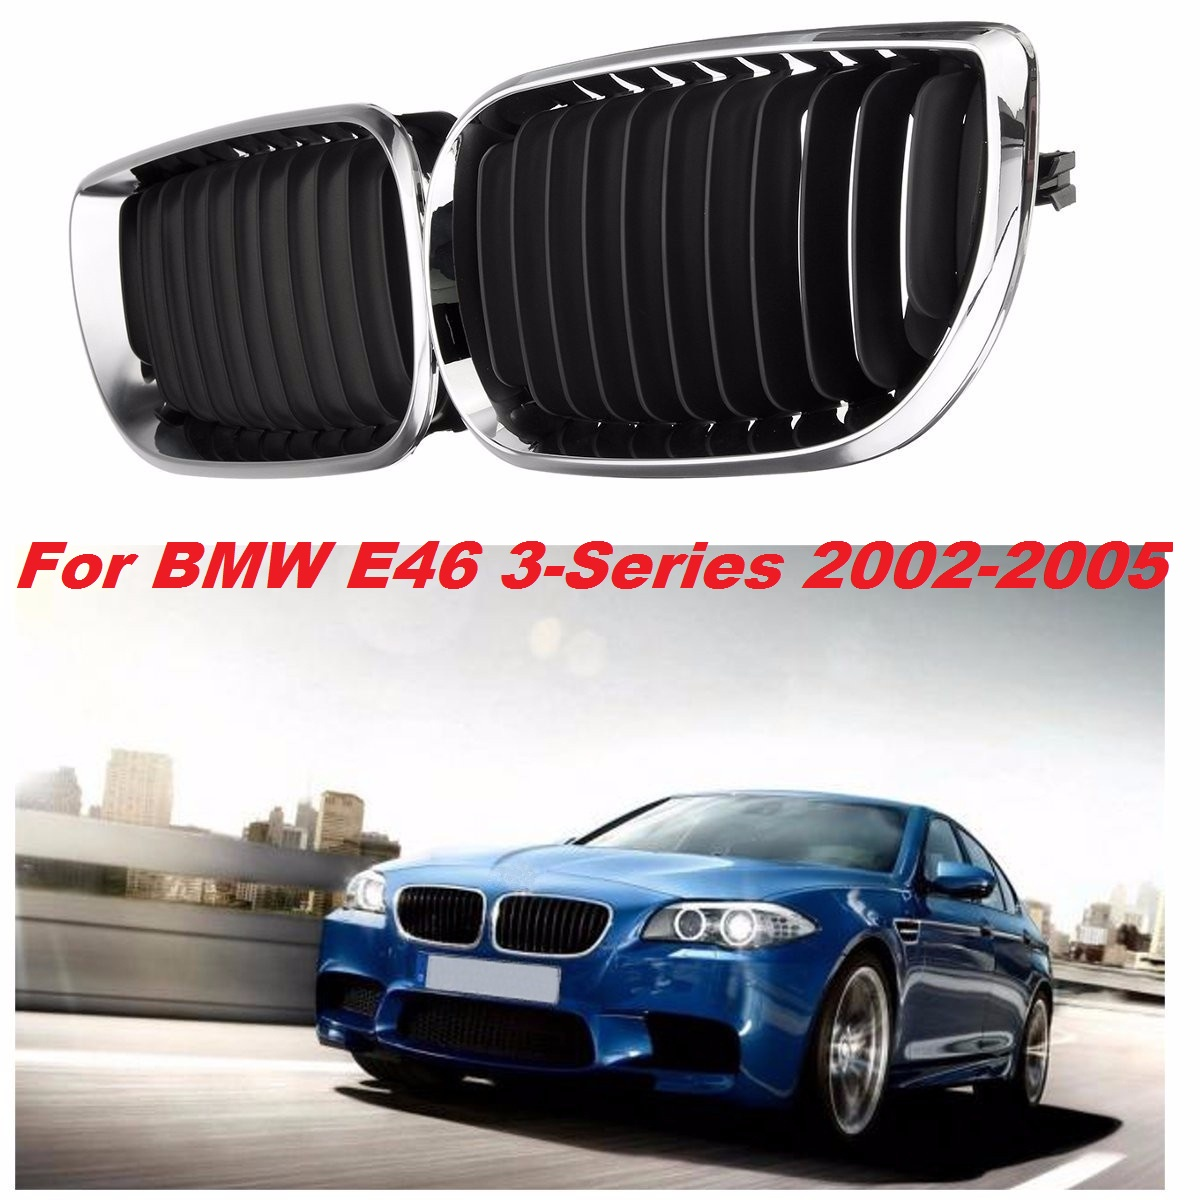 New Pair L+R Chrome Car Front Kidney Grille Grill For BMW E46 3 Series 4-Door Saloon Estate 2001 2002 2003 2004 2005 51137030546